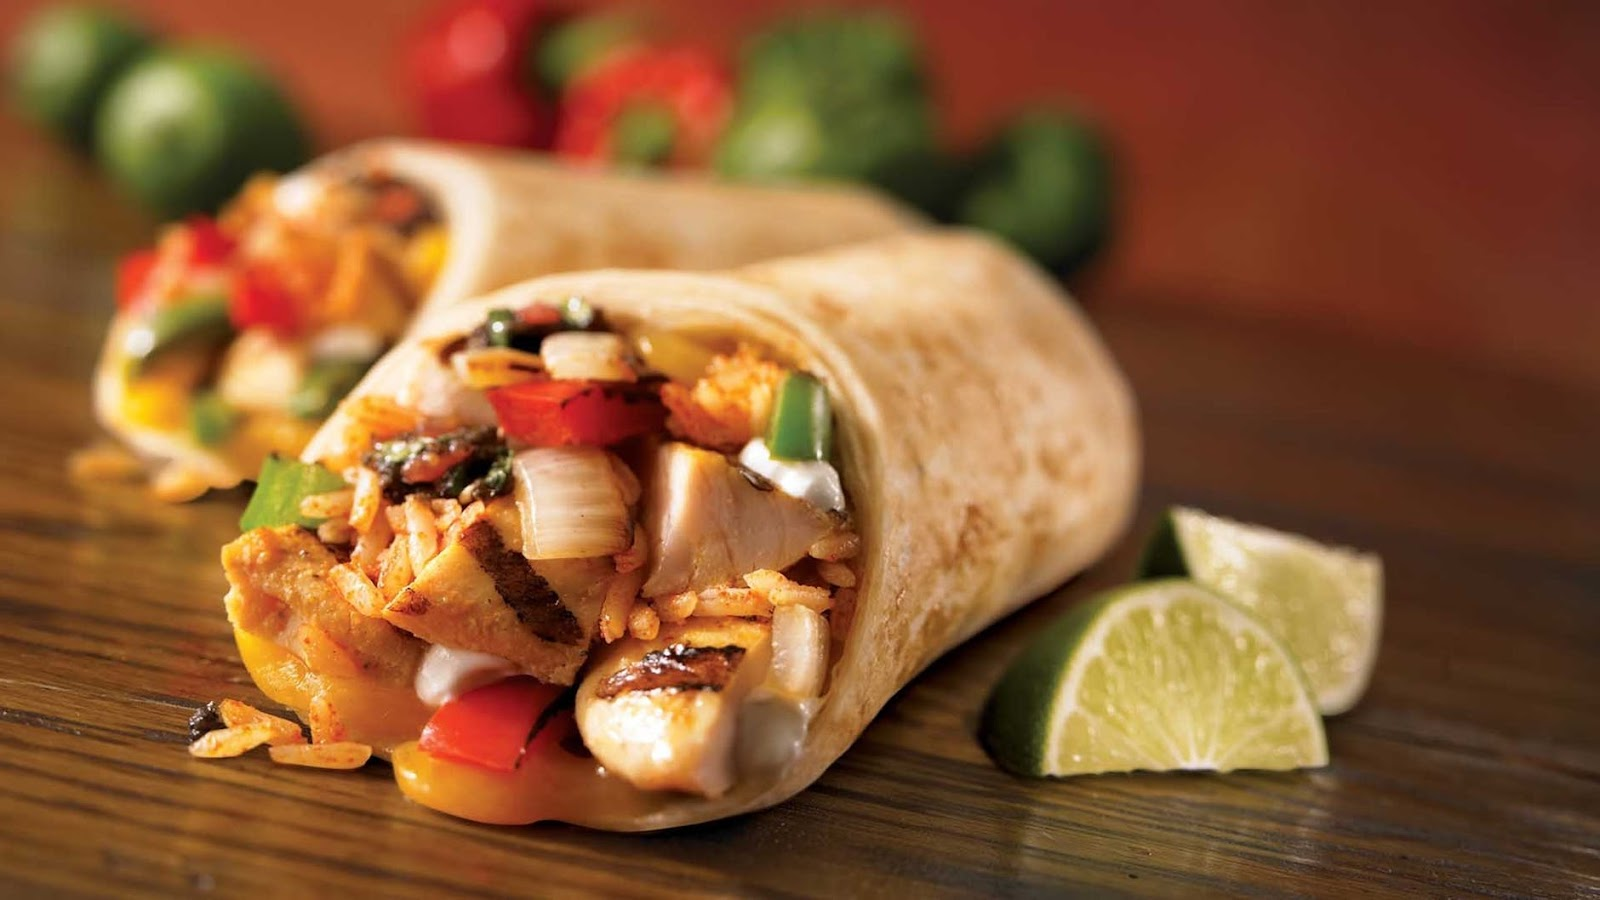 close-up of two burritos